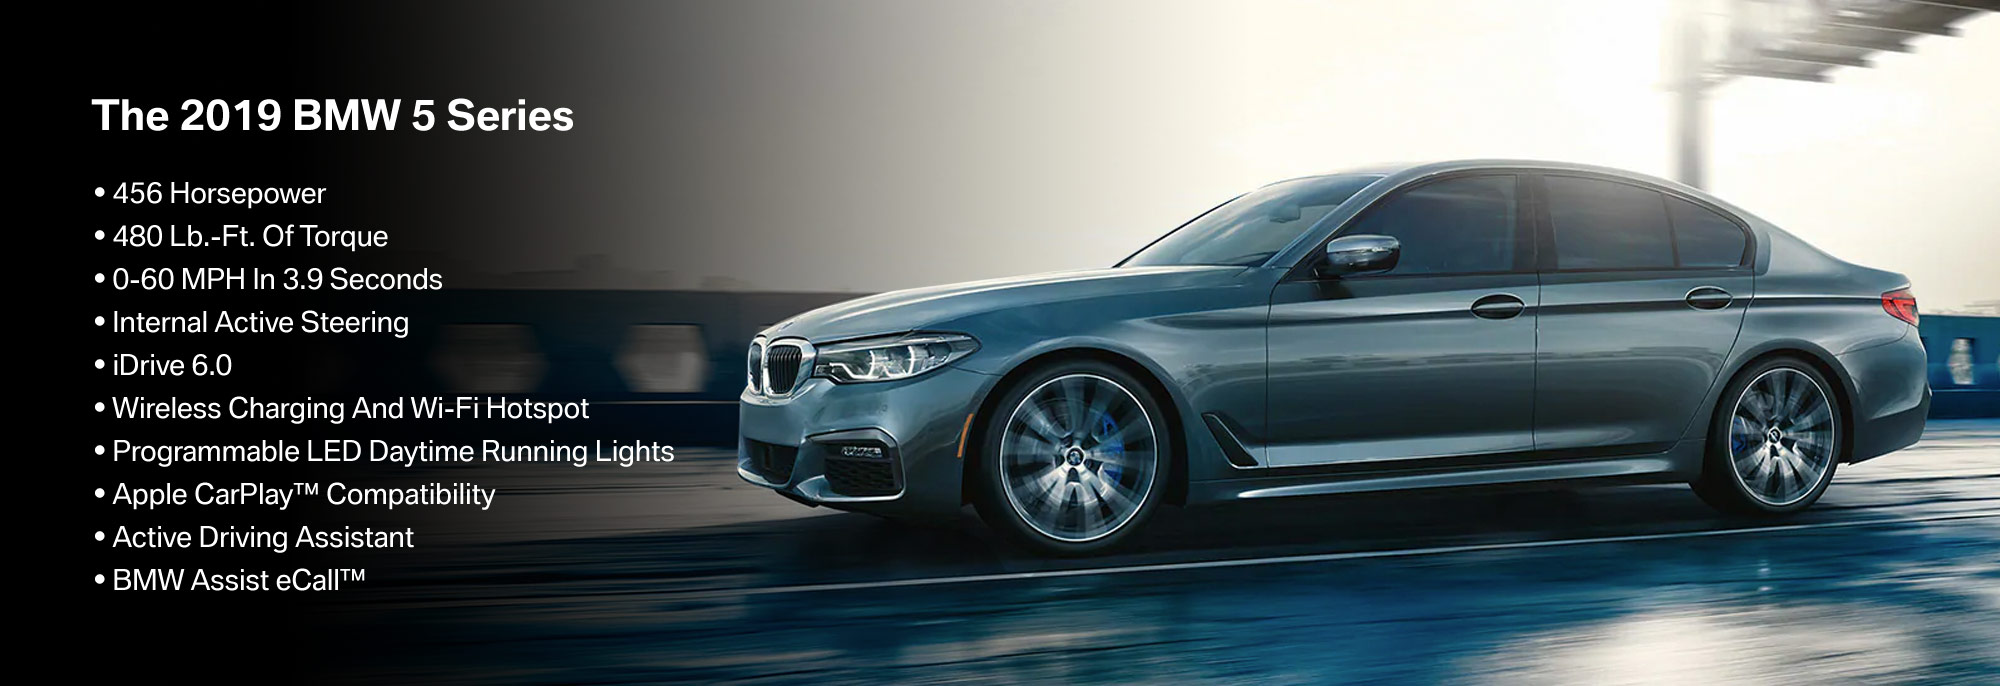 New 2019 BMW 5 Series Offer